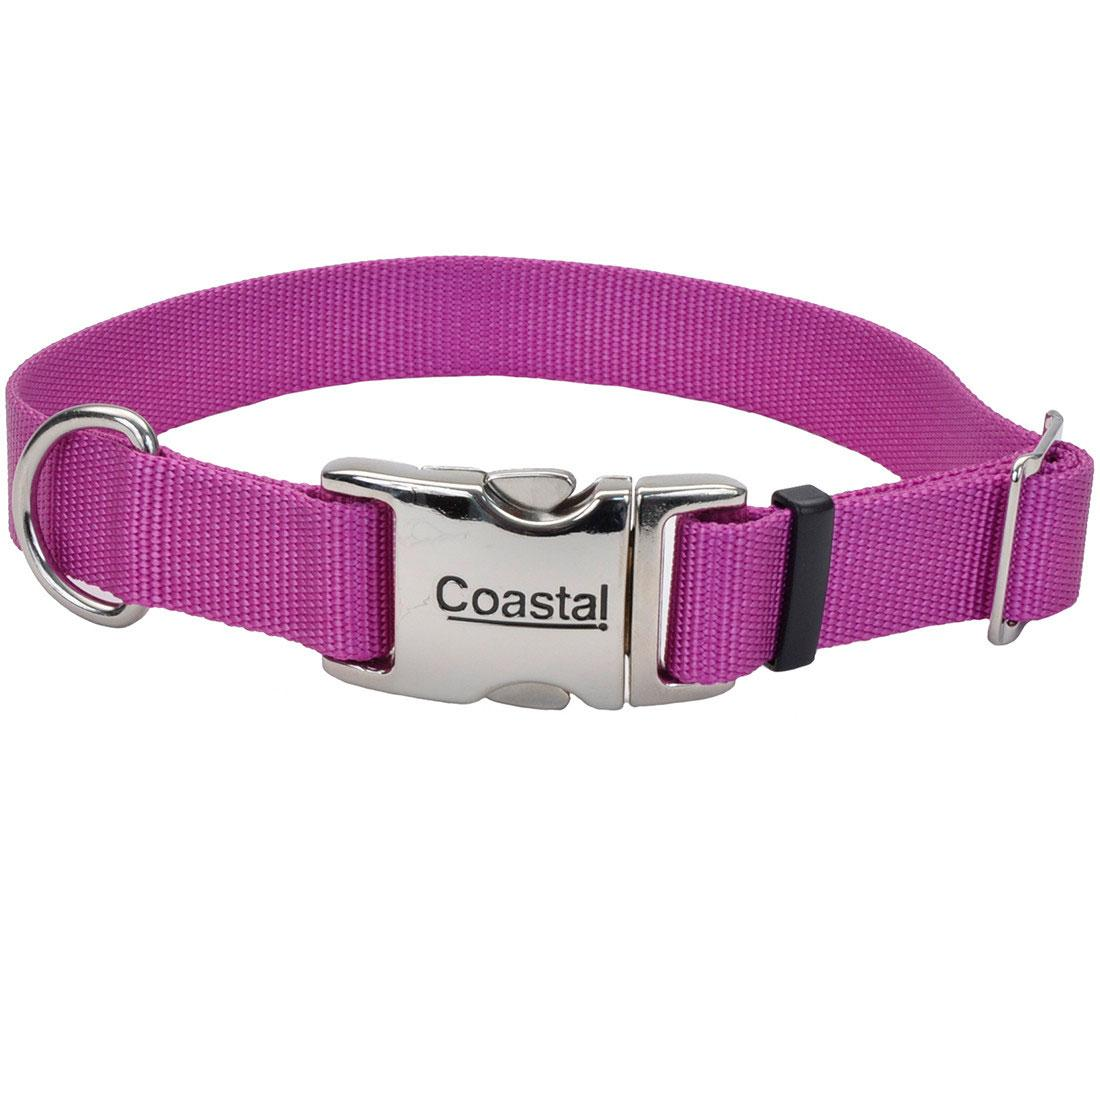 Coastal Adjustable Collar with Metal Buckle for Dogs, Orchid Image